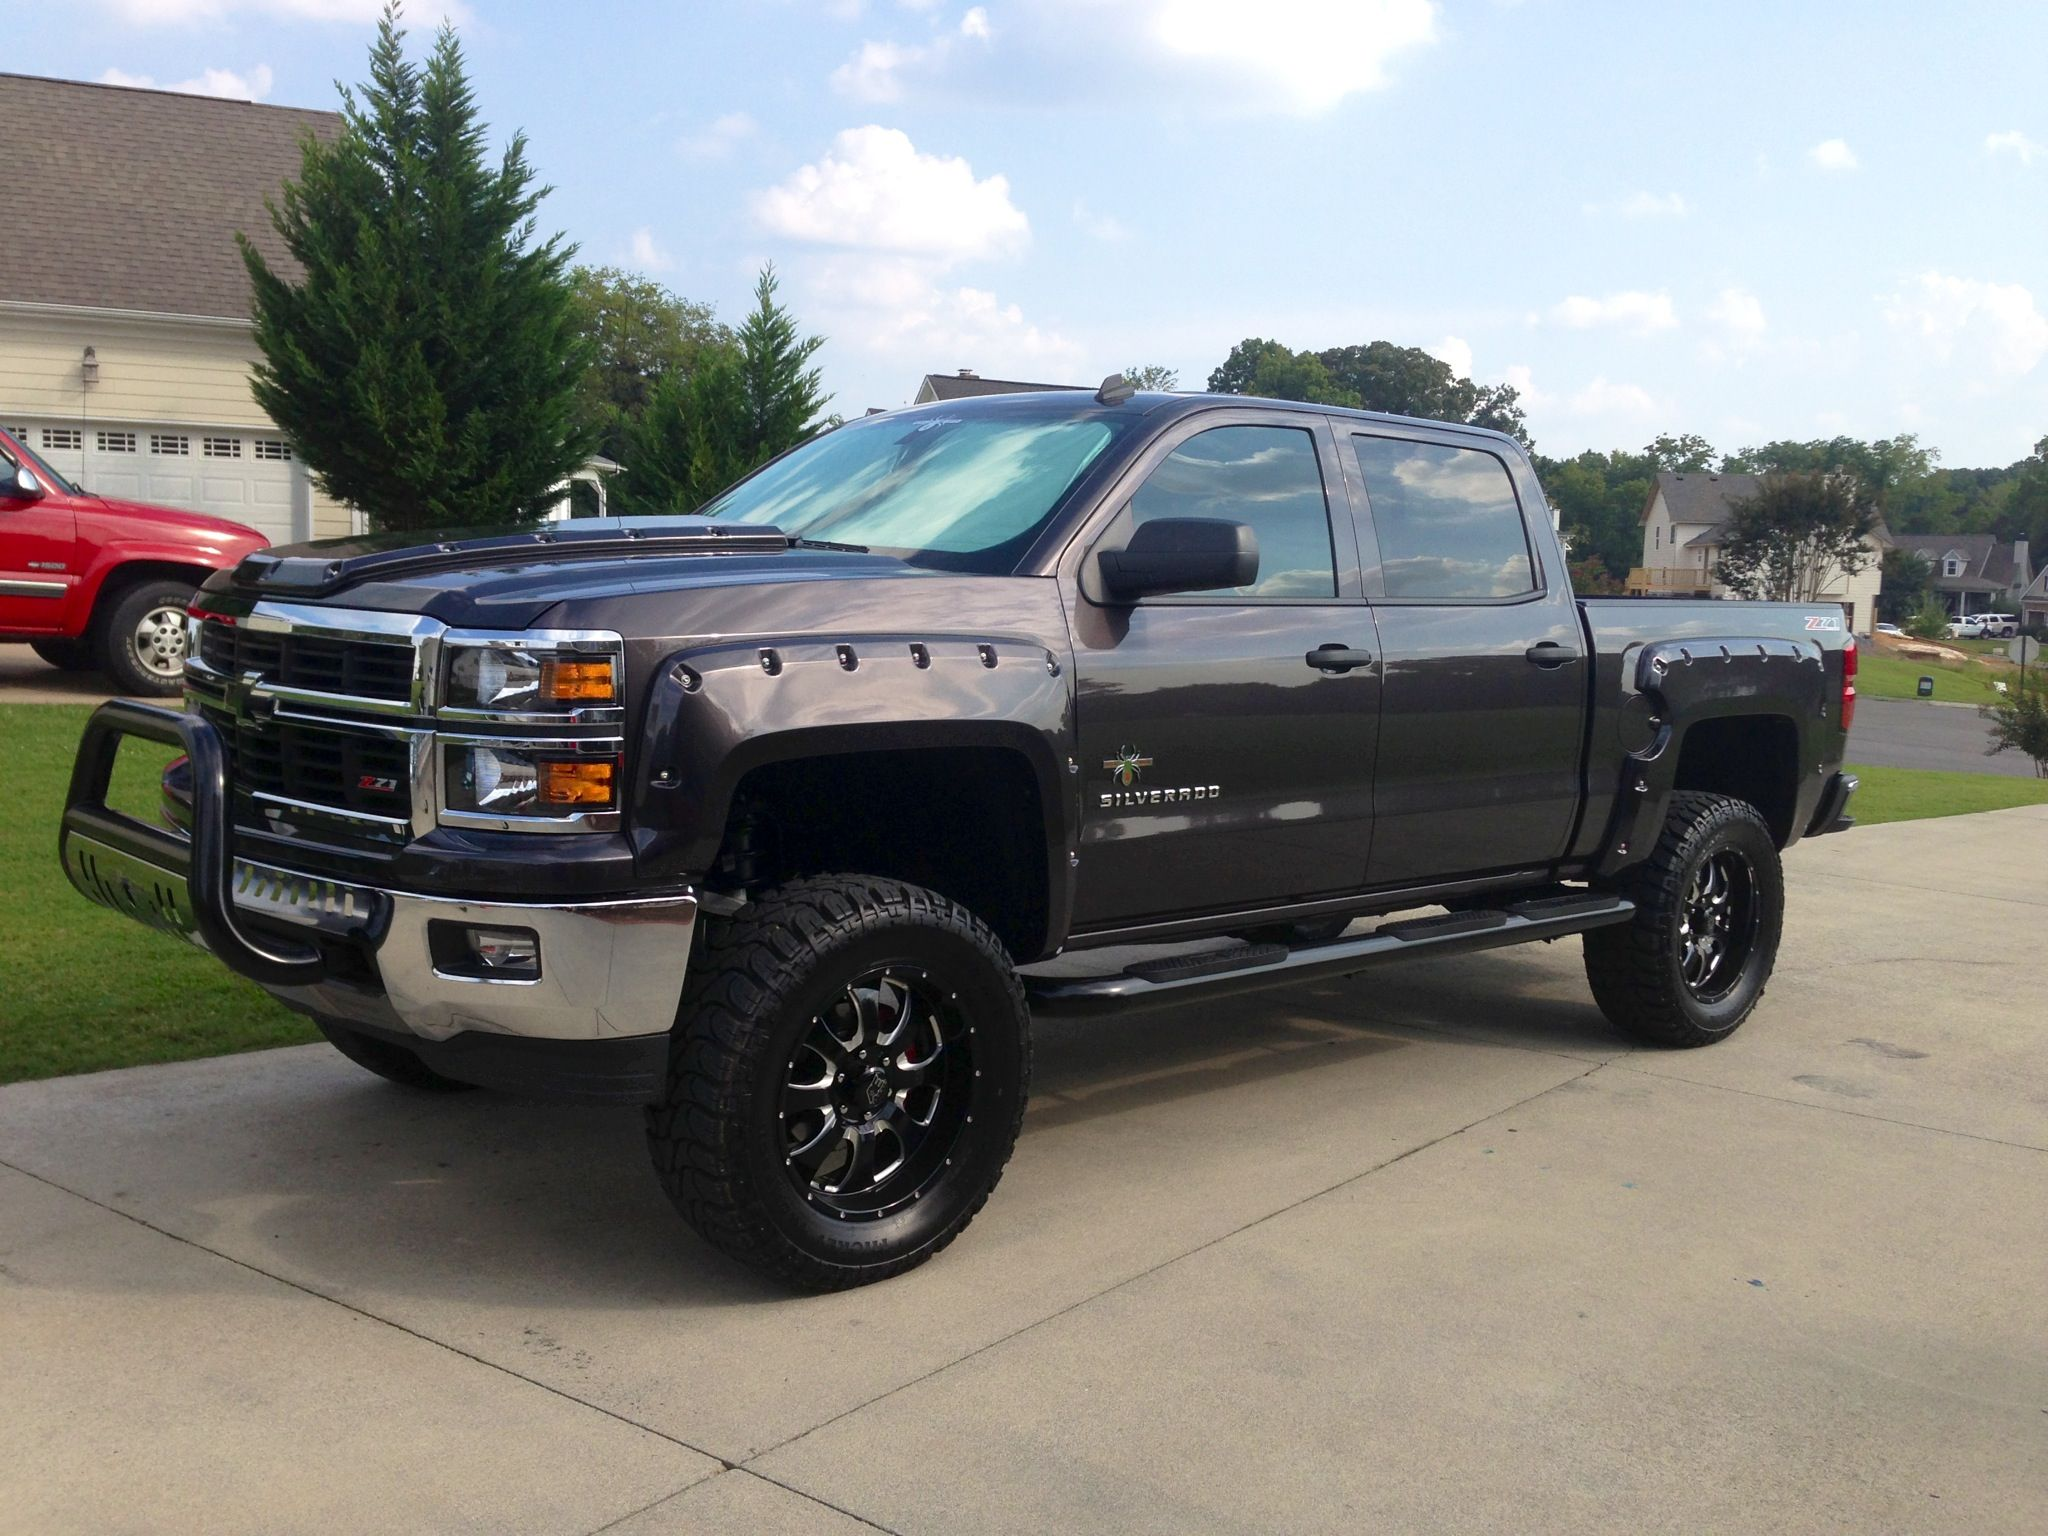 Pin By Tirzah Wyatt On My Style Hummer Truck Trucks Chevrolet Silverado